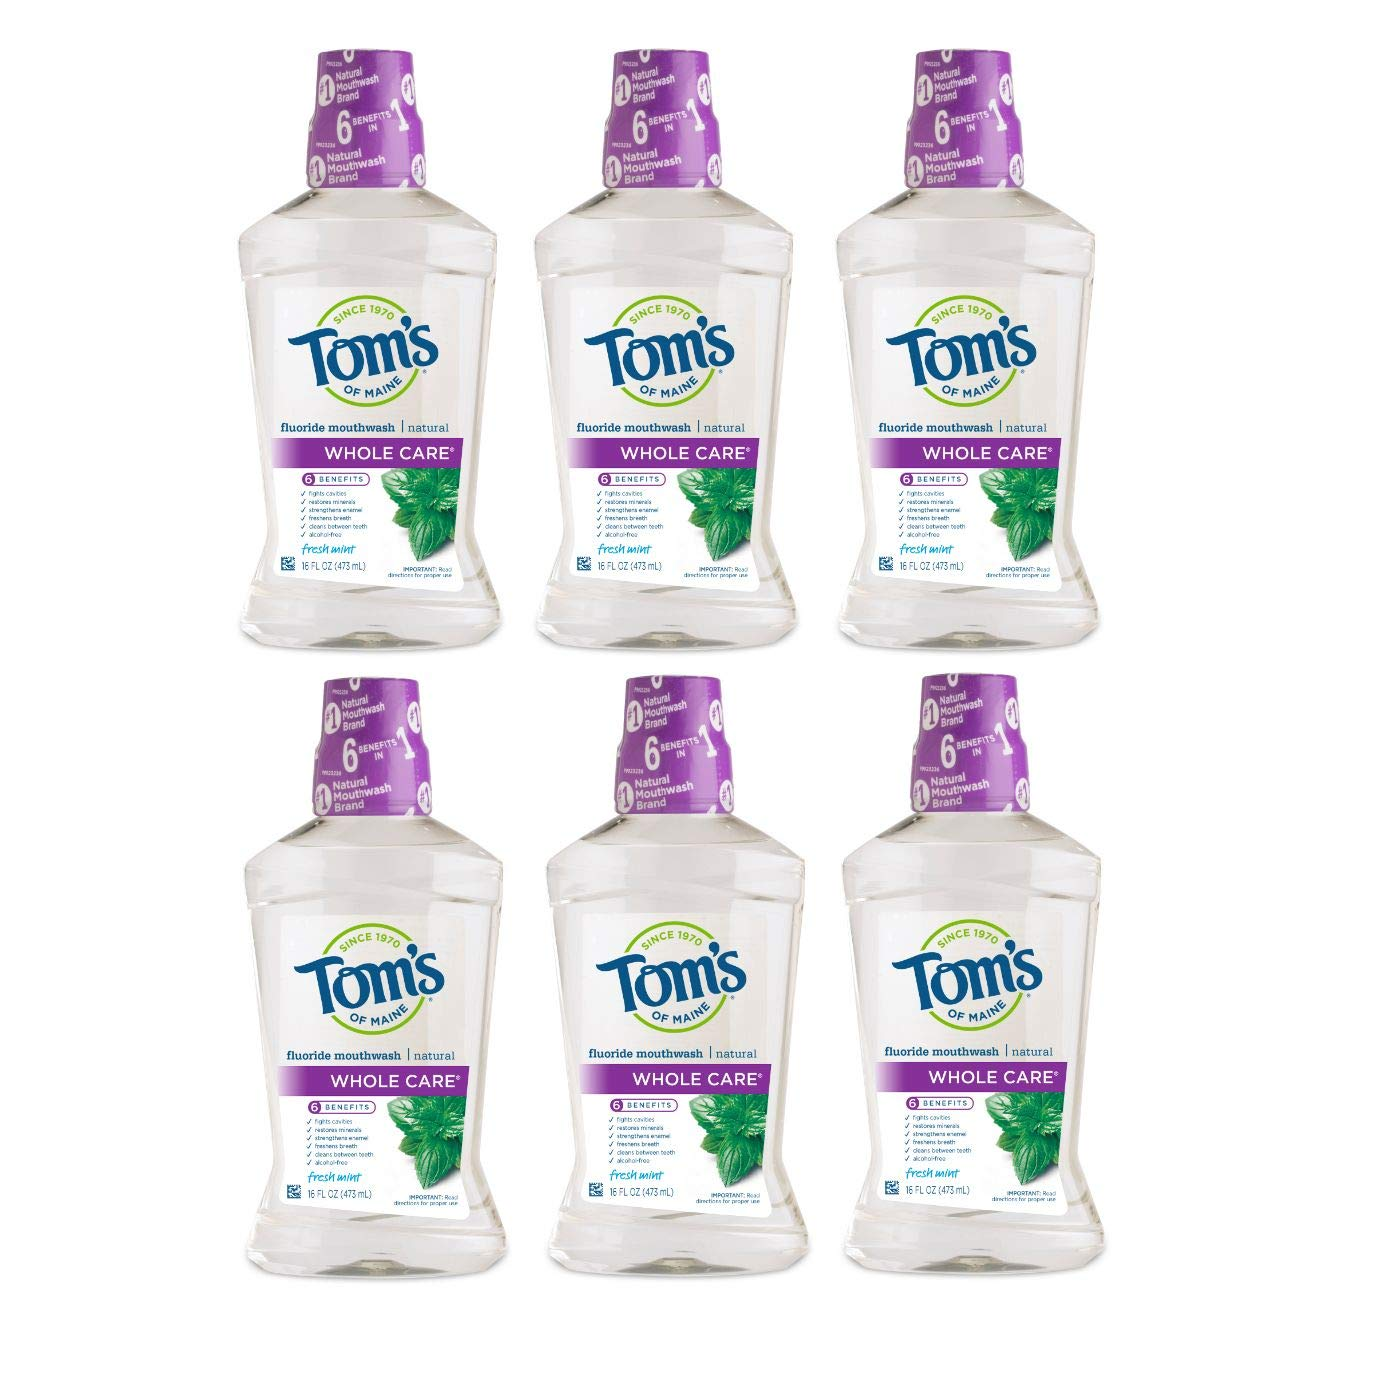 Tom's of Maine Whole Care Natural Mouthwash, Natural Mouthwash, Fresh Mint, 16 Ounce, 6-Pack